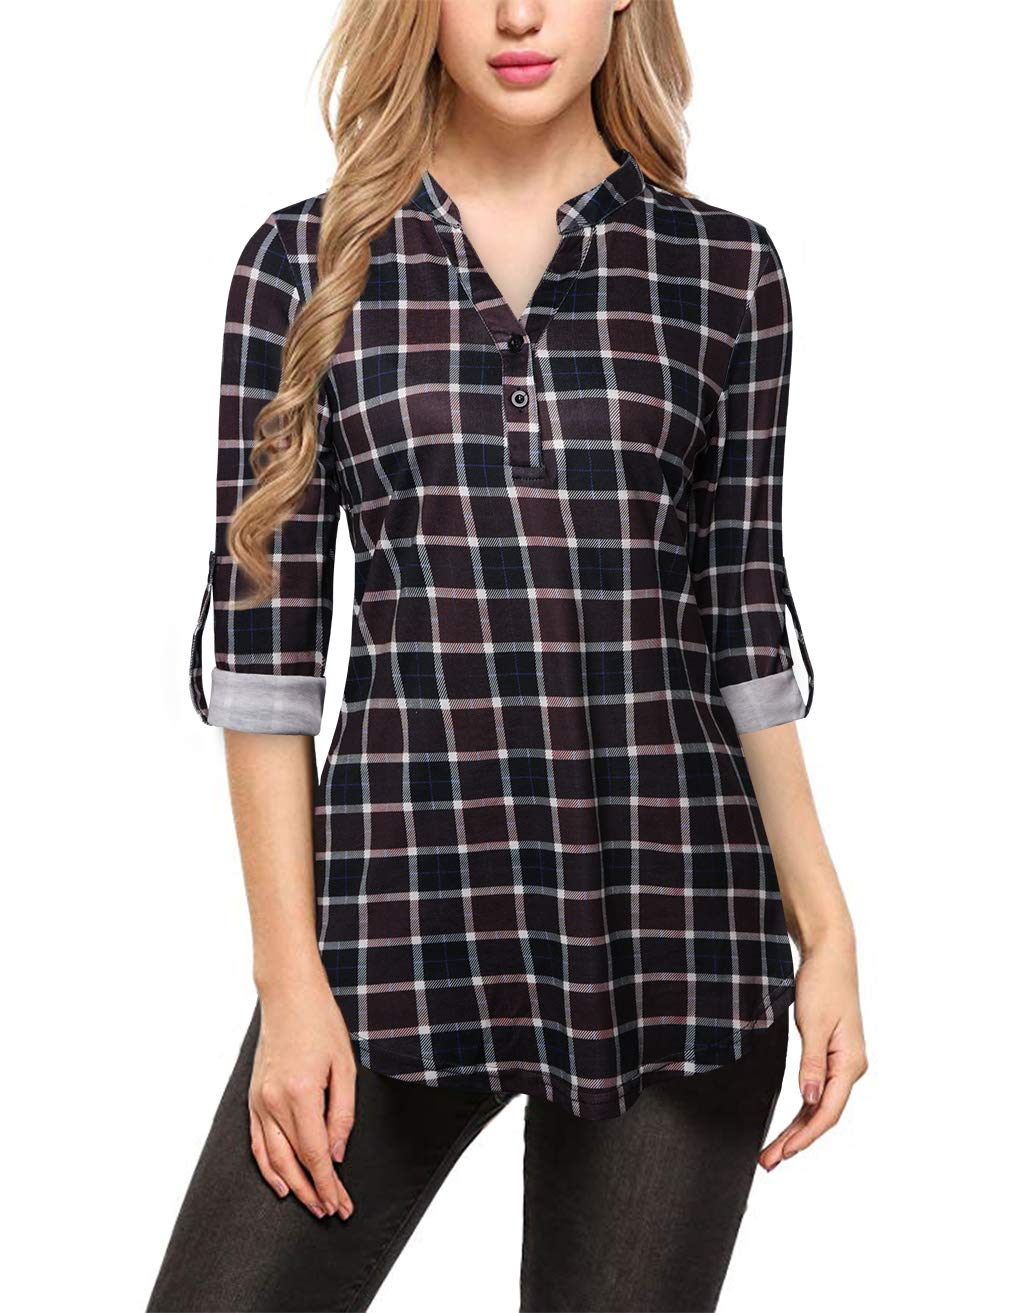 FANSIC V Neck Blouses for Women, Long Sleve Casual Roll-up 3/4 Sleeve Plaid Tunic Blouses Wine Red and Black Medium